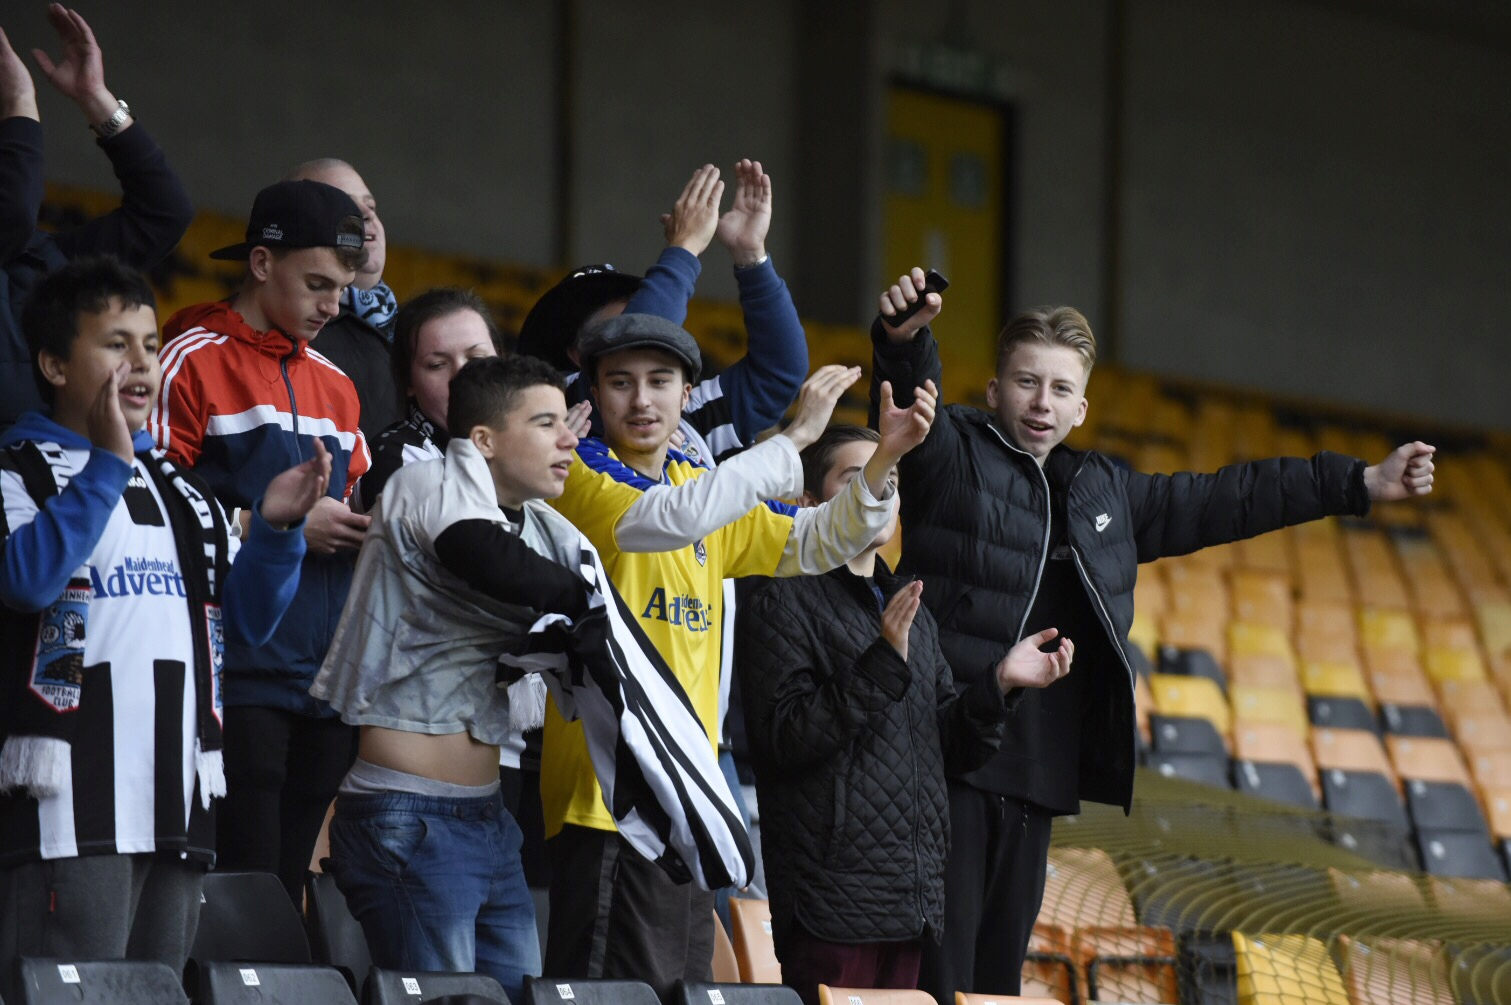 Young Maidenhead United fans cheer on their side during the 1-1 draw at Port Vale on Saturday.